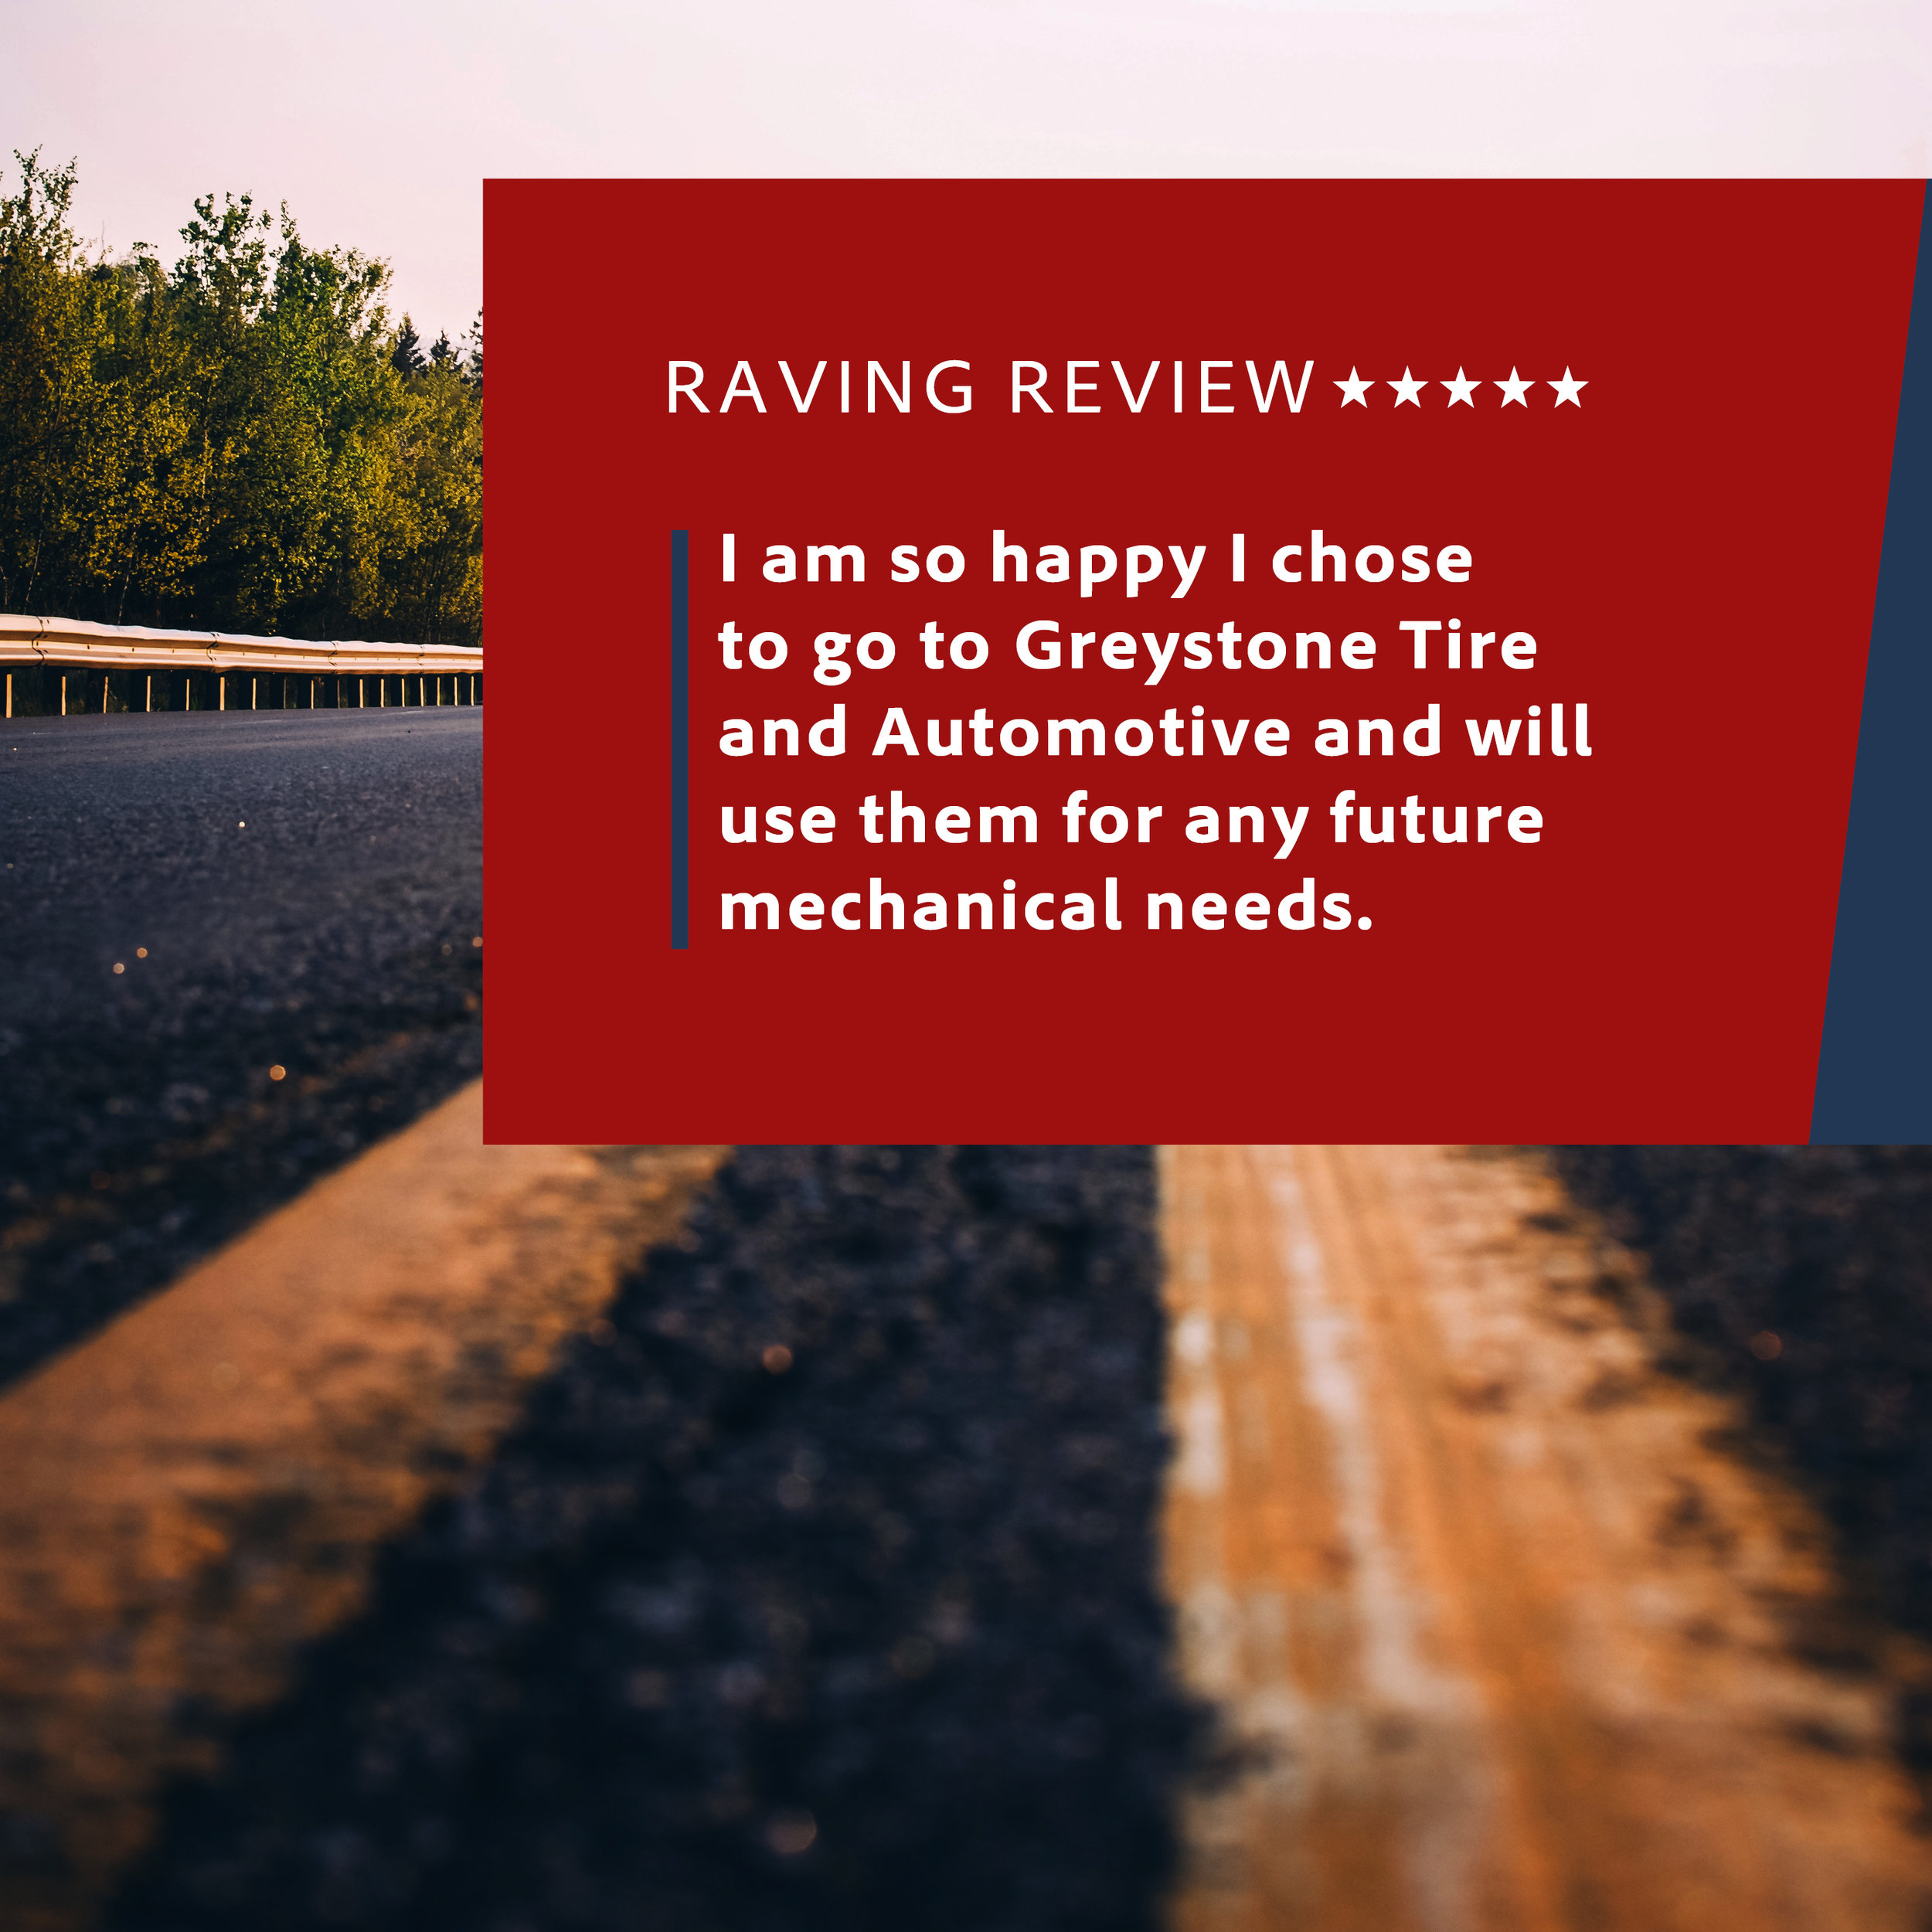 Greystone Tire and Auto review graphics 6.1.jpg